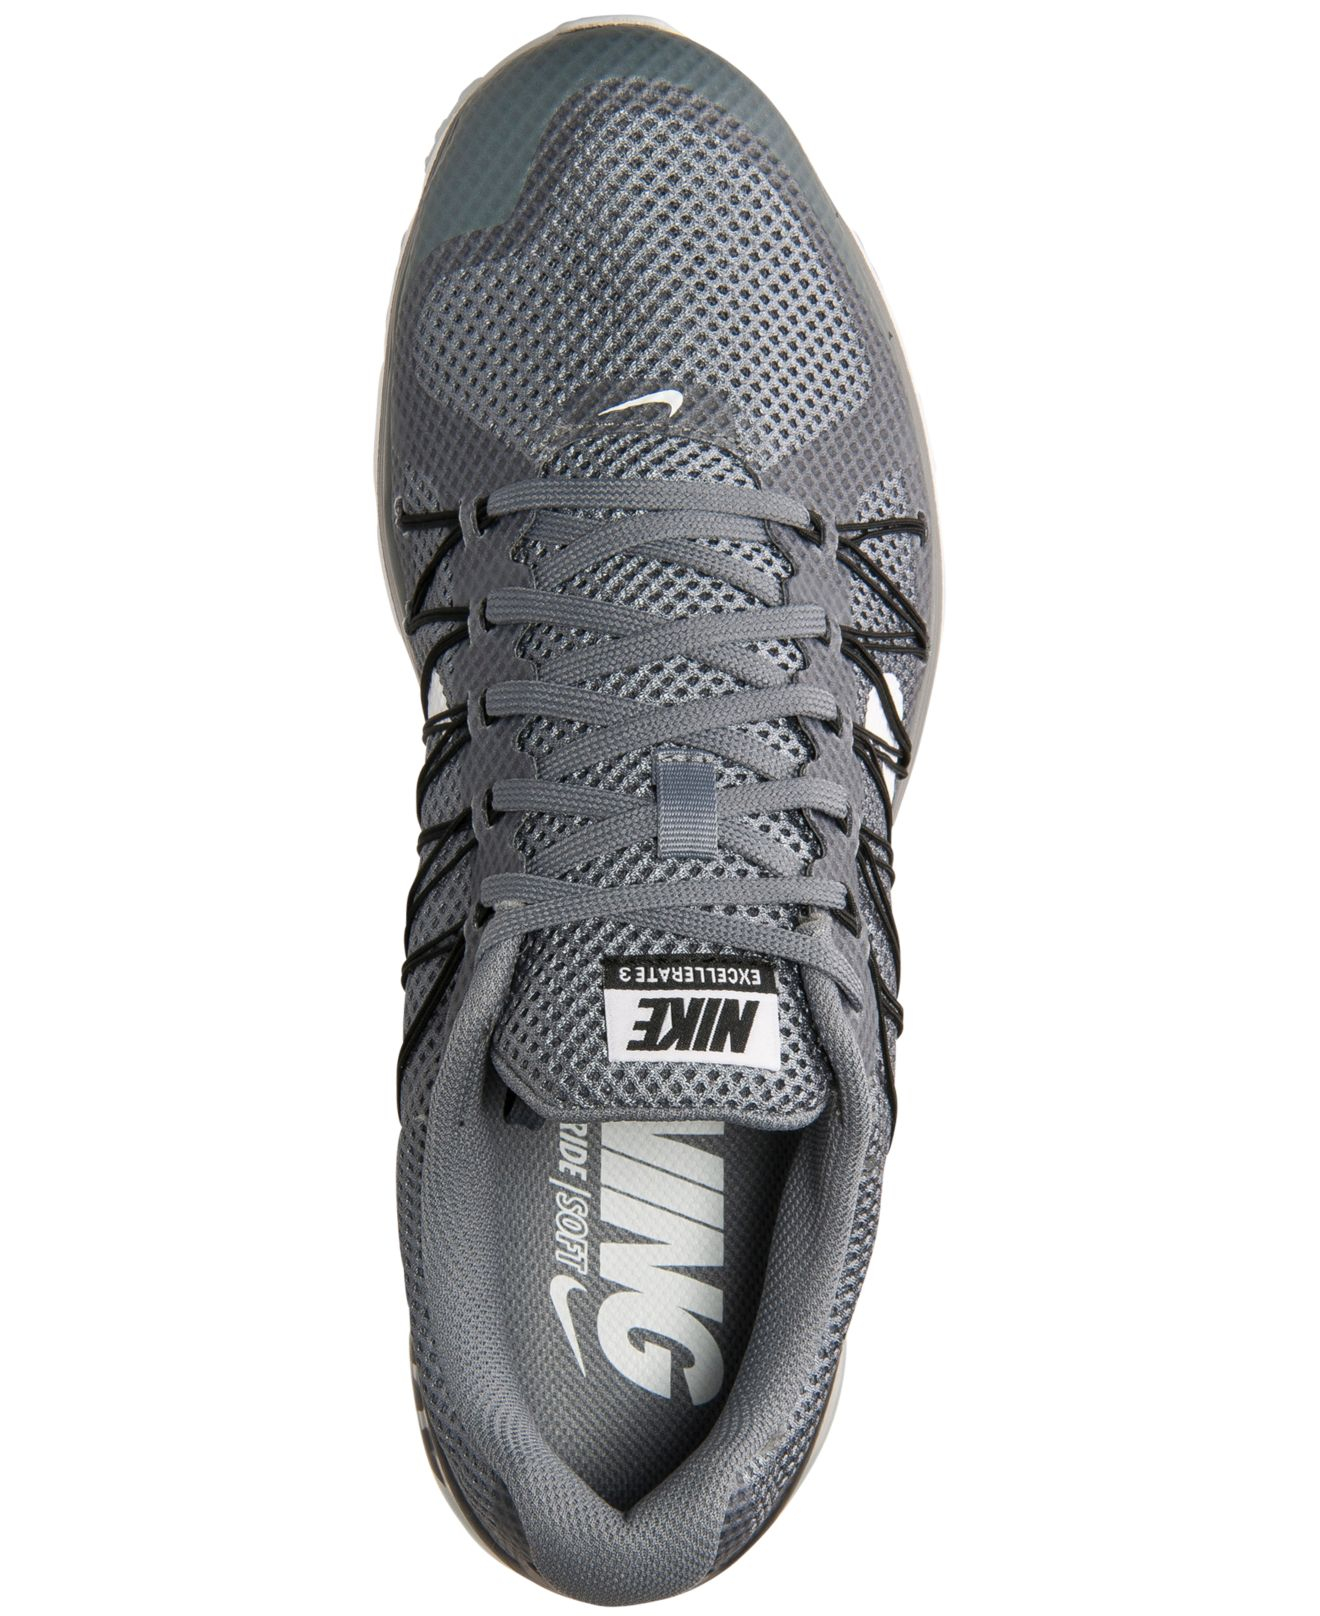 promo code 7929a 1ec87 Lyst - Nike Mens Air Max Excellerate 3 Running Sneakers From Finish Line  in Gray for Men